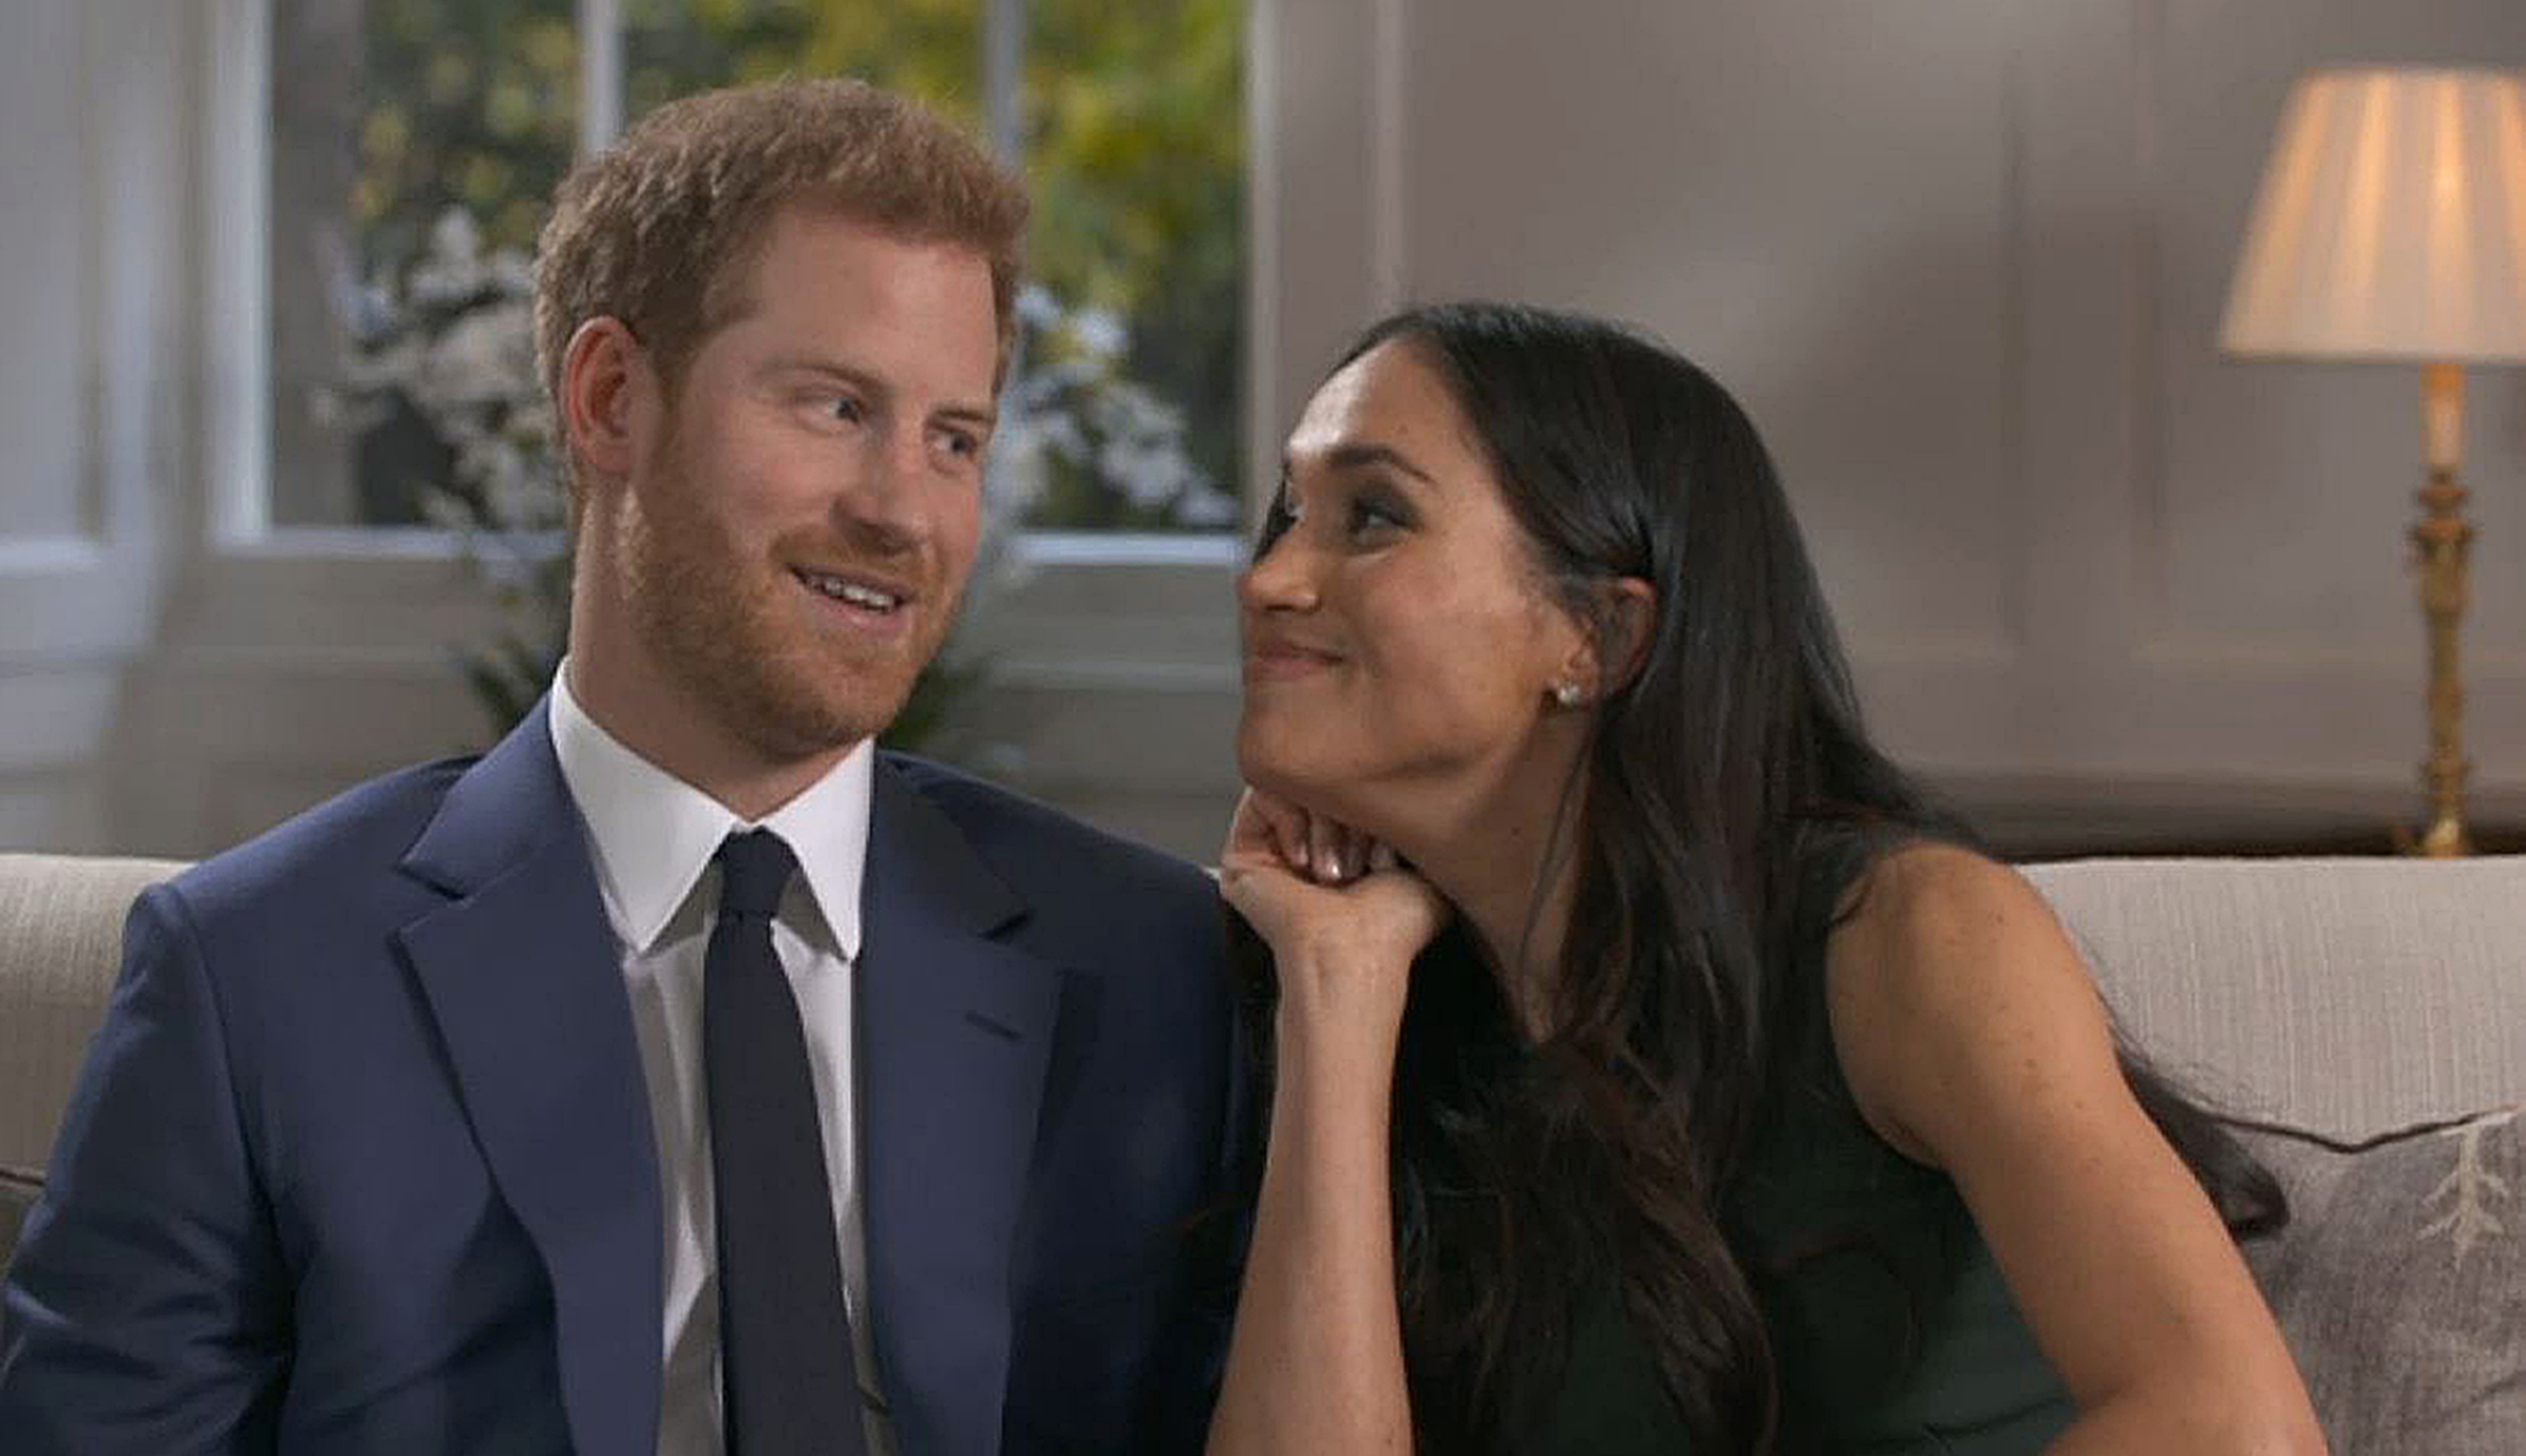 Watch: Prince Harry and Meghan Markle laugh and joke in BBC cutaway footage - The Sunday Post